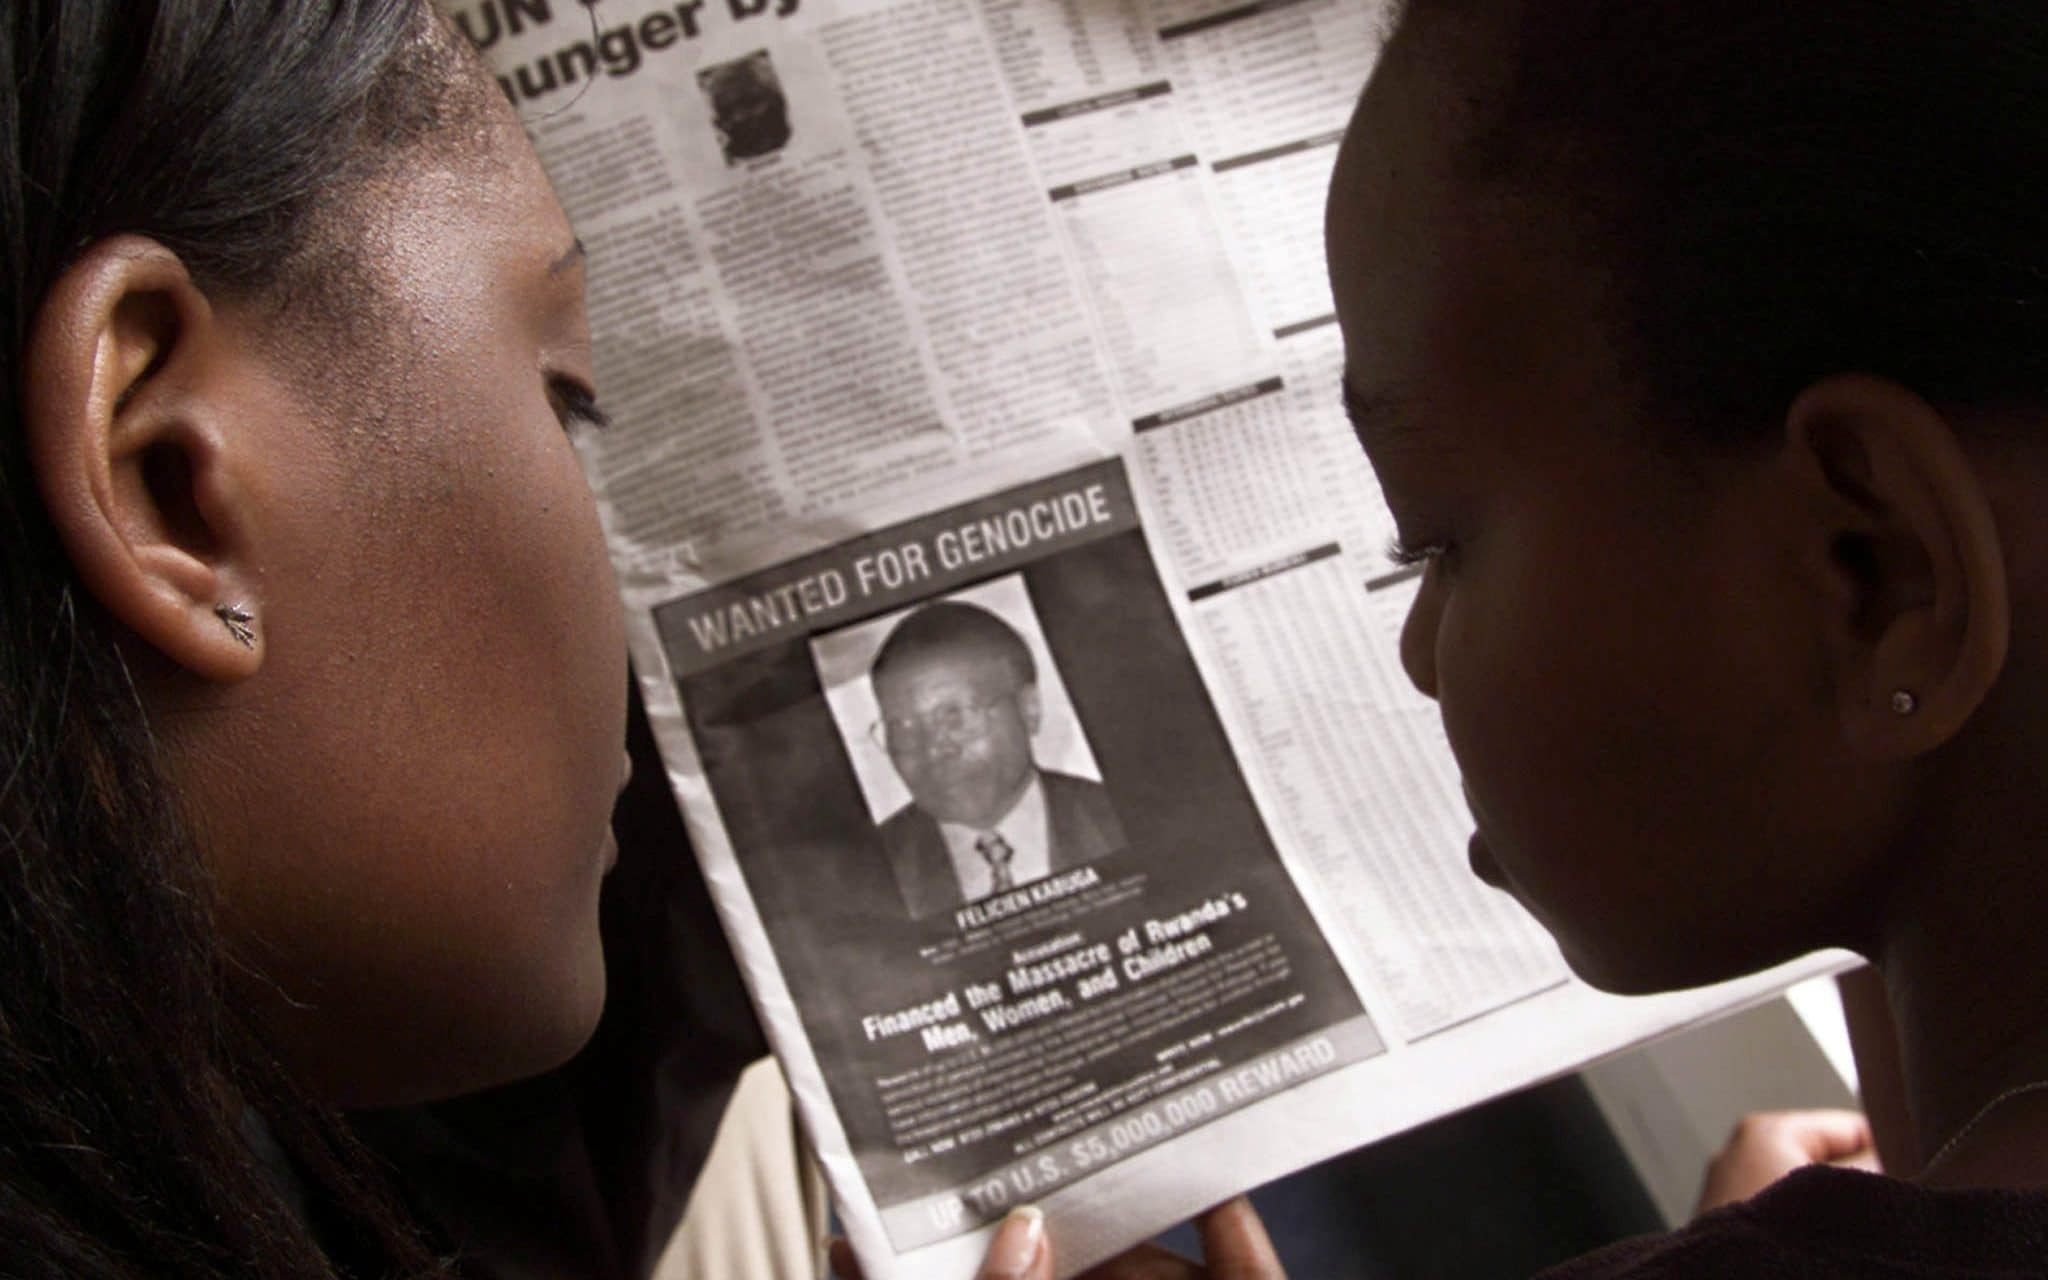 Rwandan genocide suspect Felicien Kabuga arrested after 25 years on run